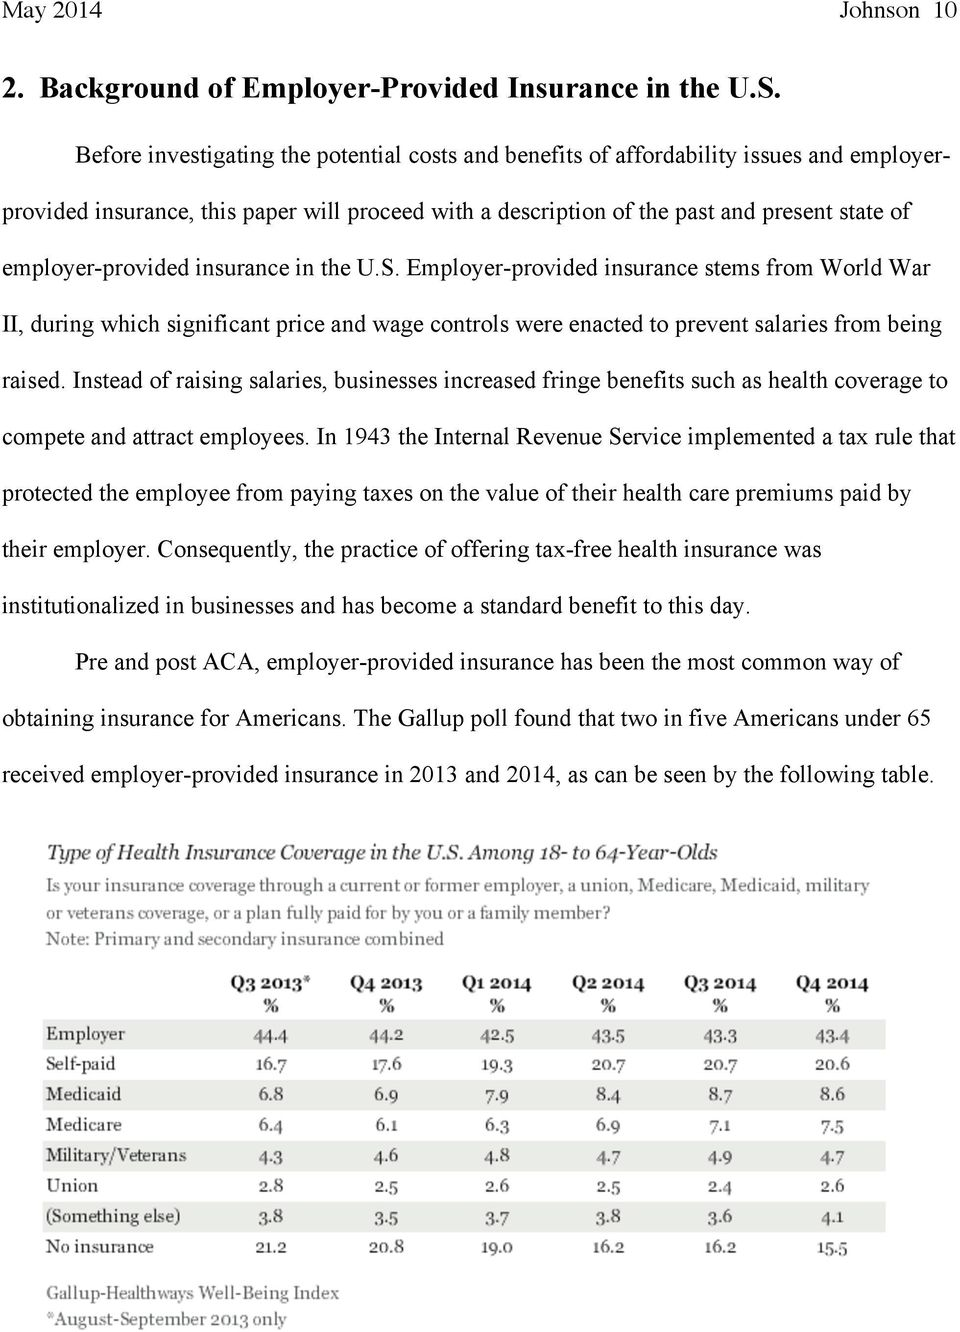 employer-provided insurance in the U.S. Employer-provided insurance stems from World War II, during which significant price and wage controls were enacted to prevent salaries from being raised.